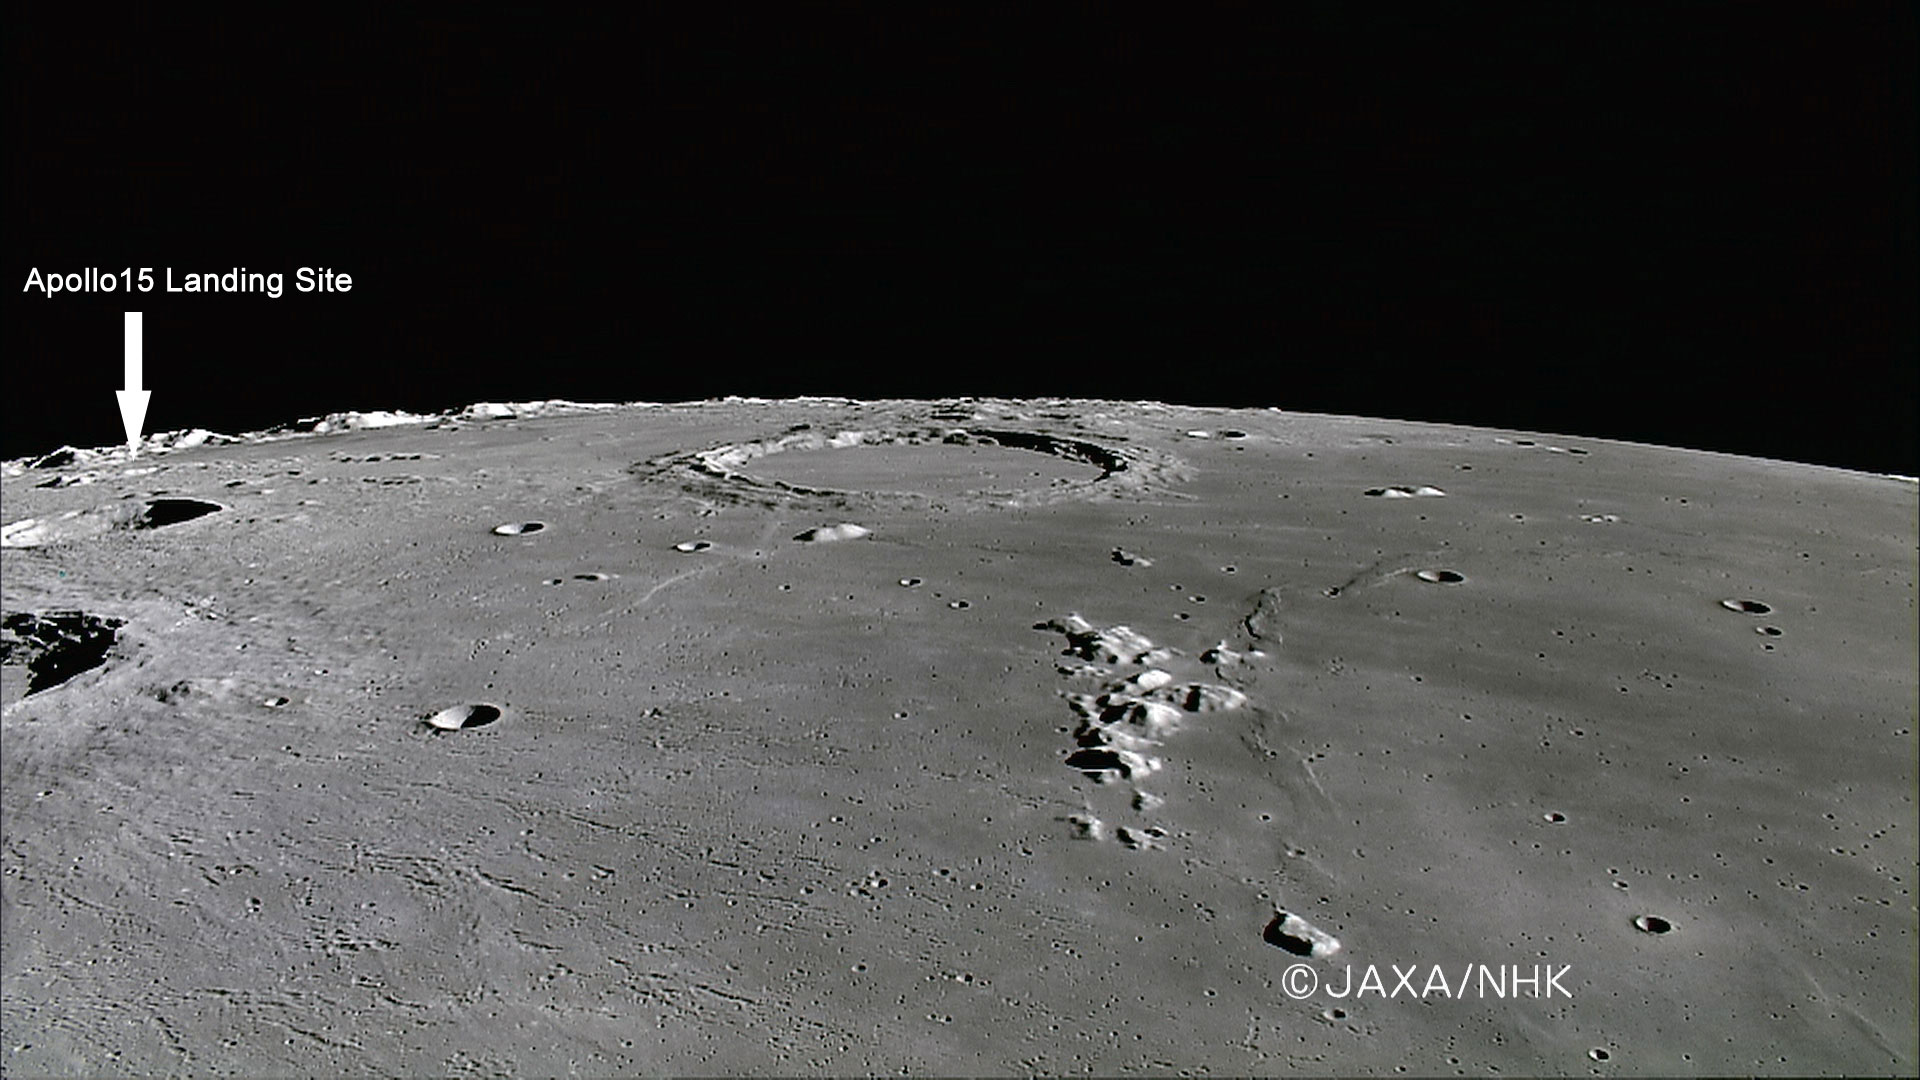 Apollo 15 wallpaper - 64013